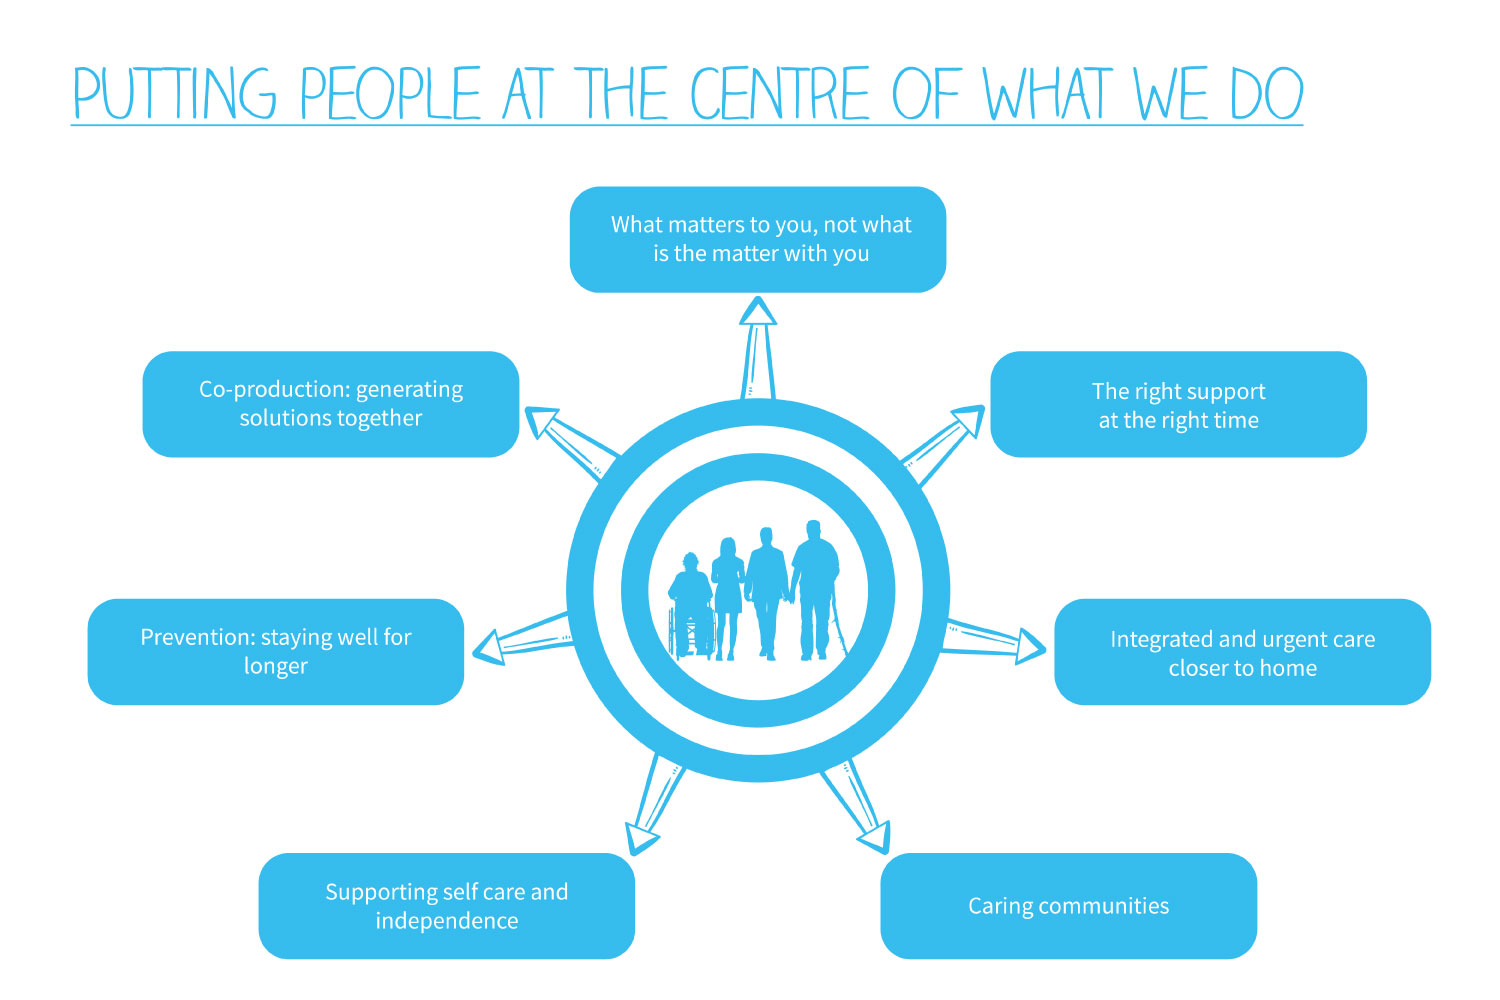 Infographic showing how we put people at the centre of what we do